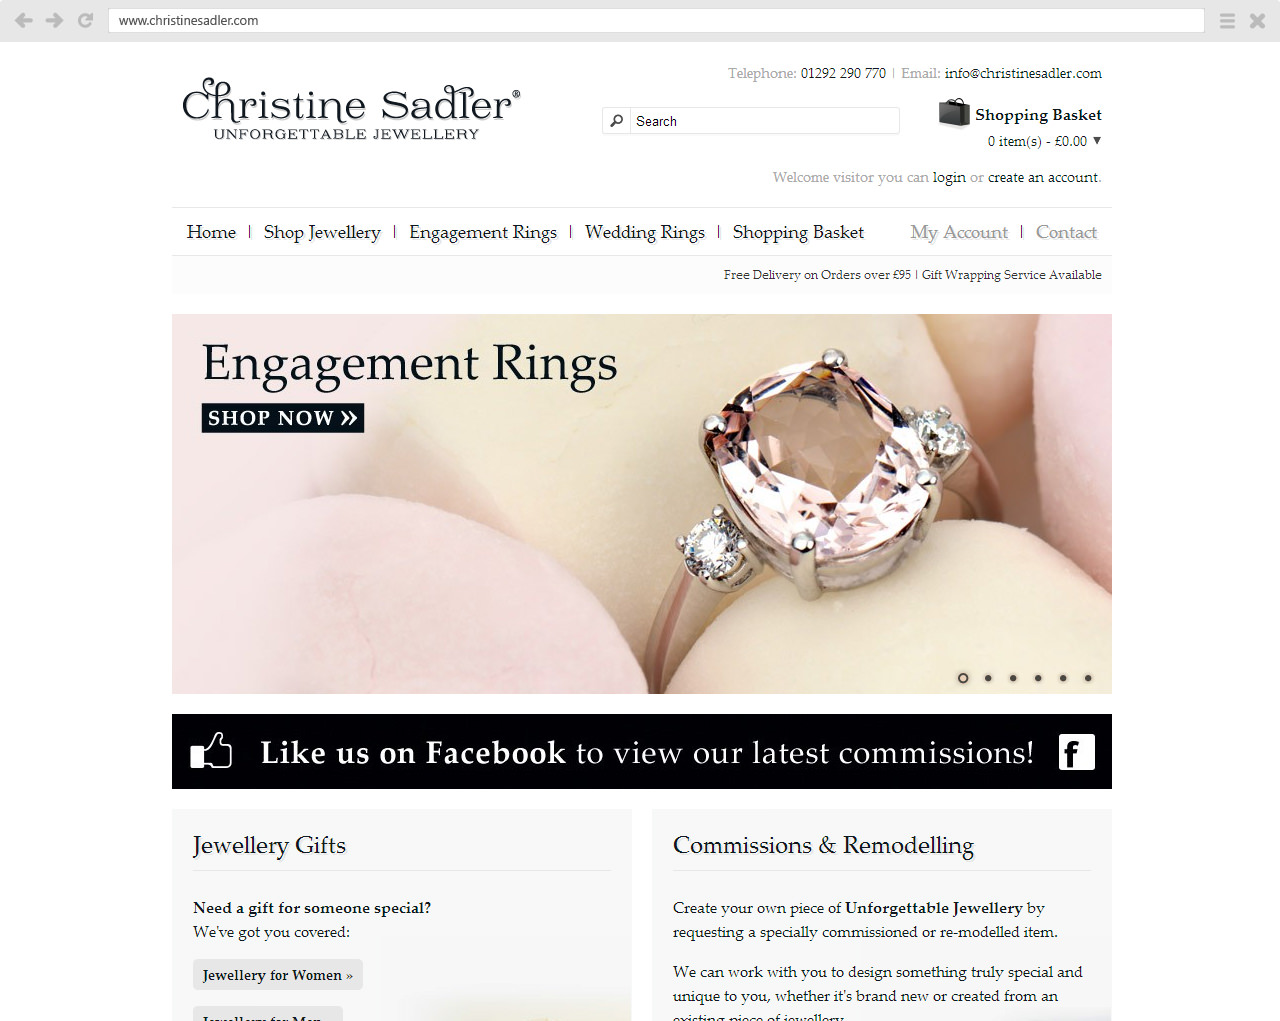 Christine Sadler Website